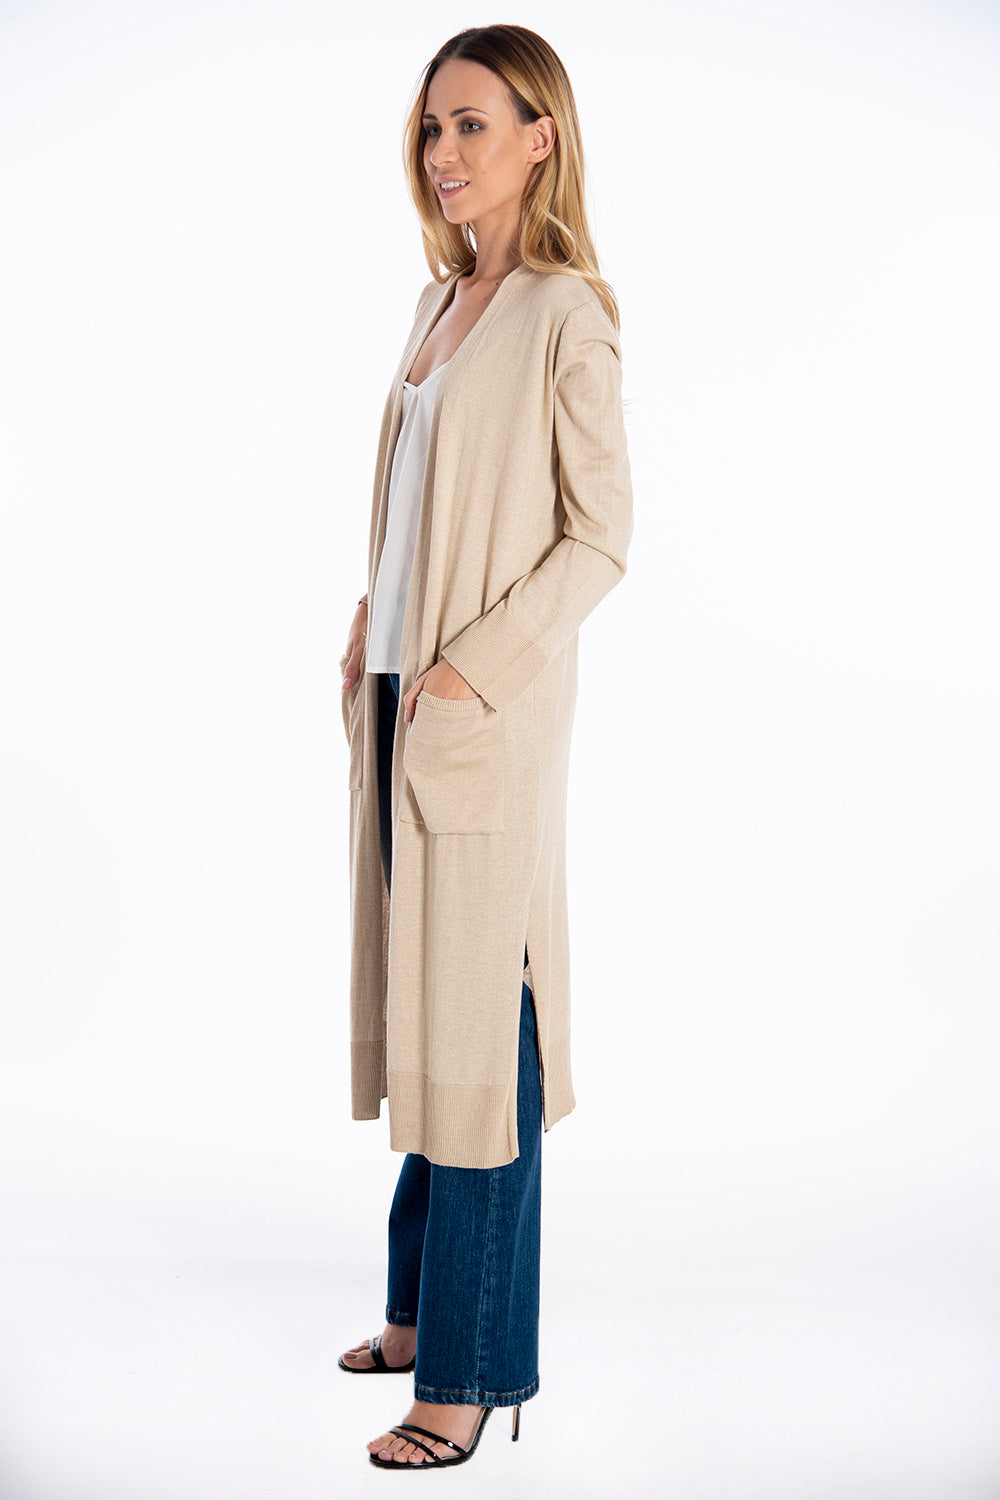 Infinity Knitwear fine long cardigan with front pockets